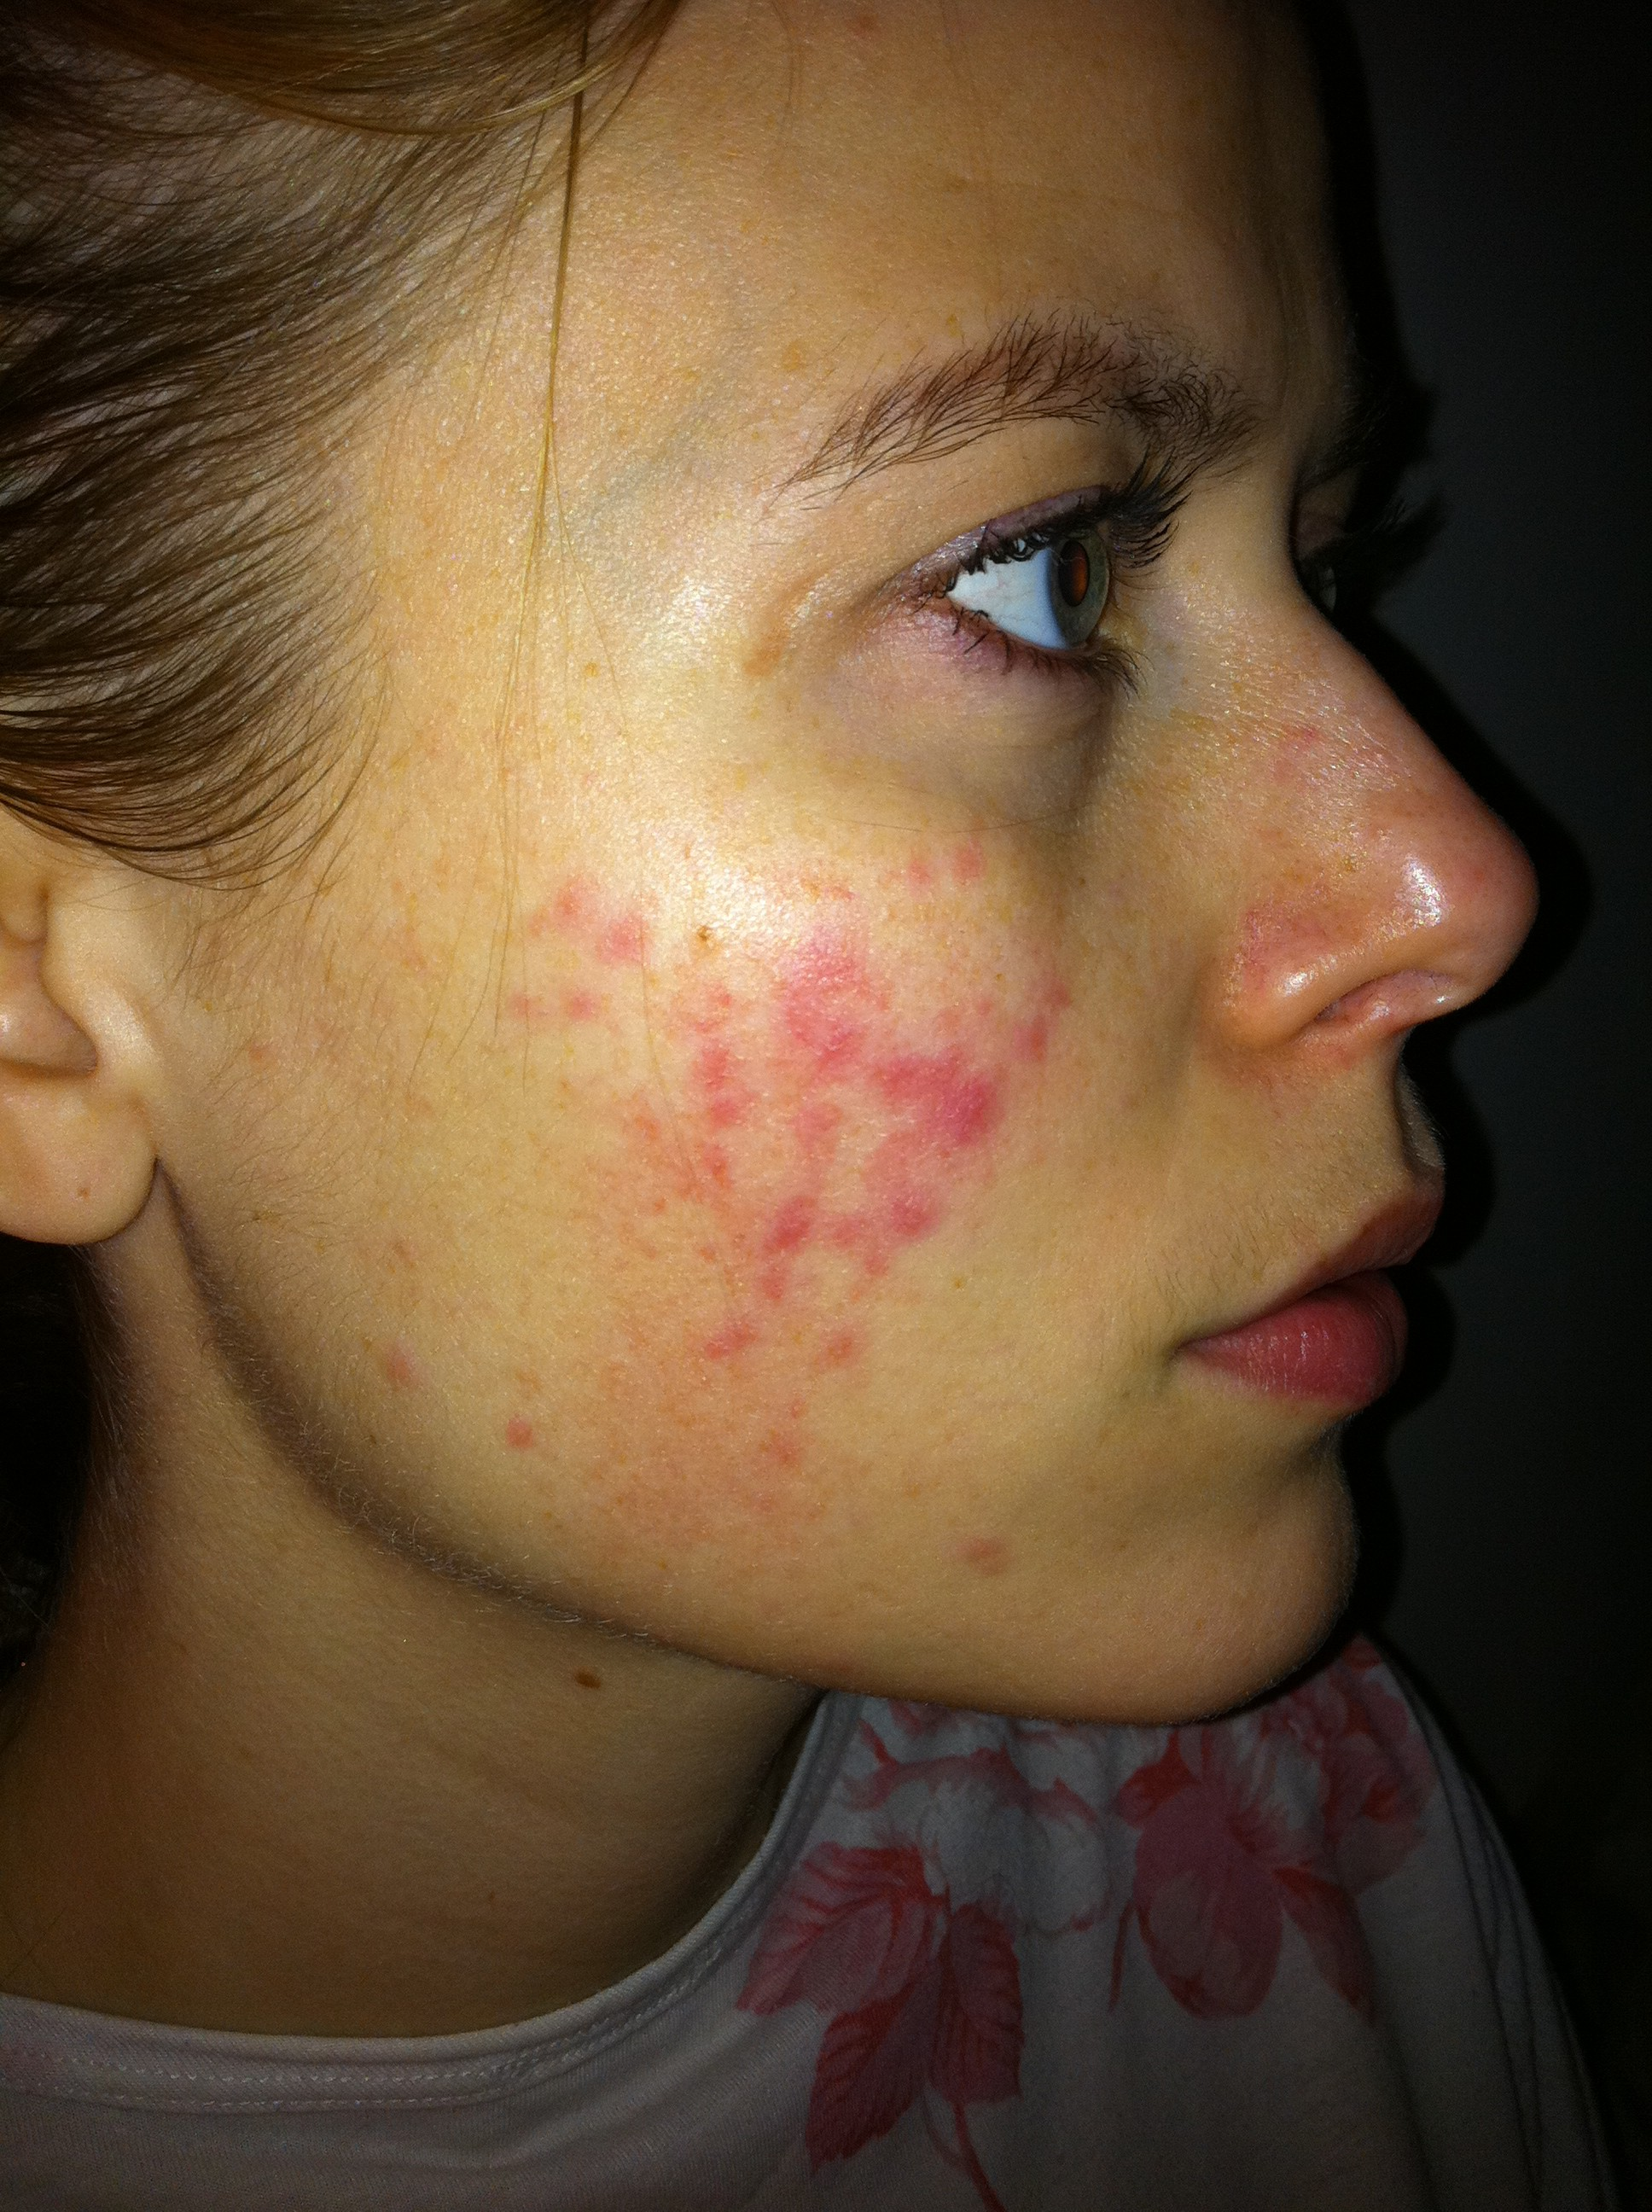 facial dermatitis pictures